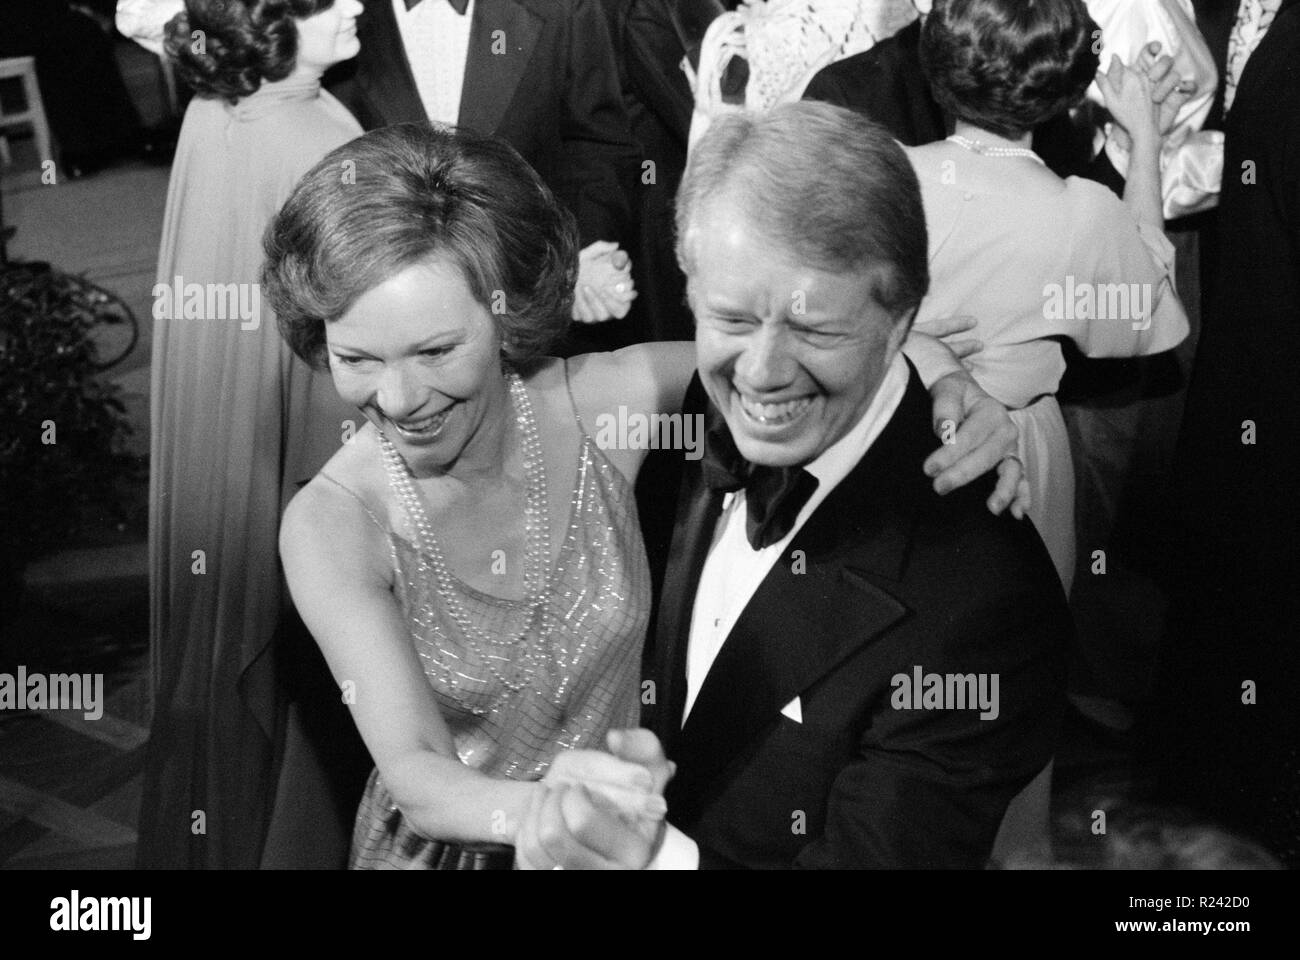 Photograph of President Jimmy Carter and First Lady Rosalynn Carter dancing at a White House Congressional Ball. Photographed by Marion S. Trikosko. Dated 1977 Stock Photo